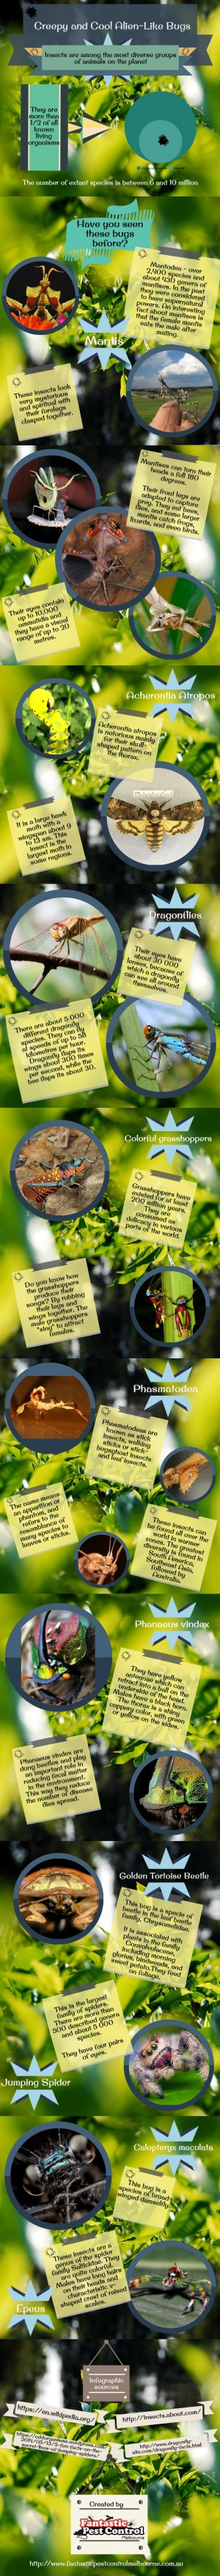 Have you seen these cool alien-like bugs before? There are a lot of strange creatures in the wor ...